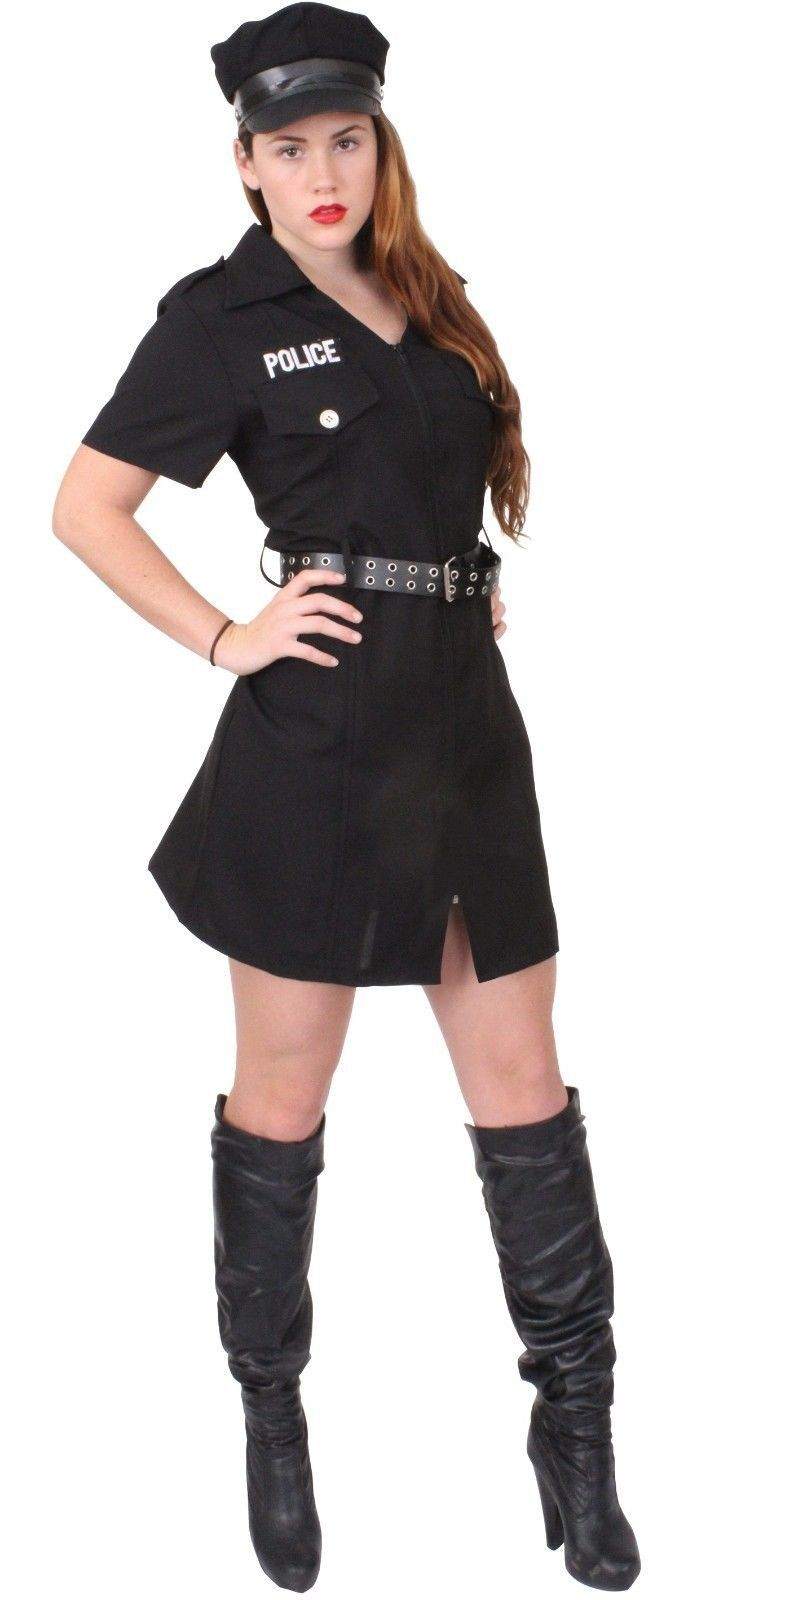 Womens Police Costume - Girls Officer Outfit - Halloween Dress Up Sexy Police  sc 1 st  Pinterest & Womens Police Costume - Girls Officer Outfit - Halloween Dress Up ...